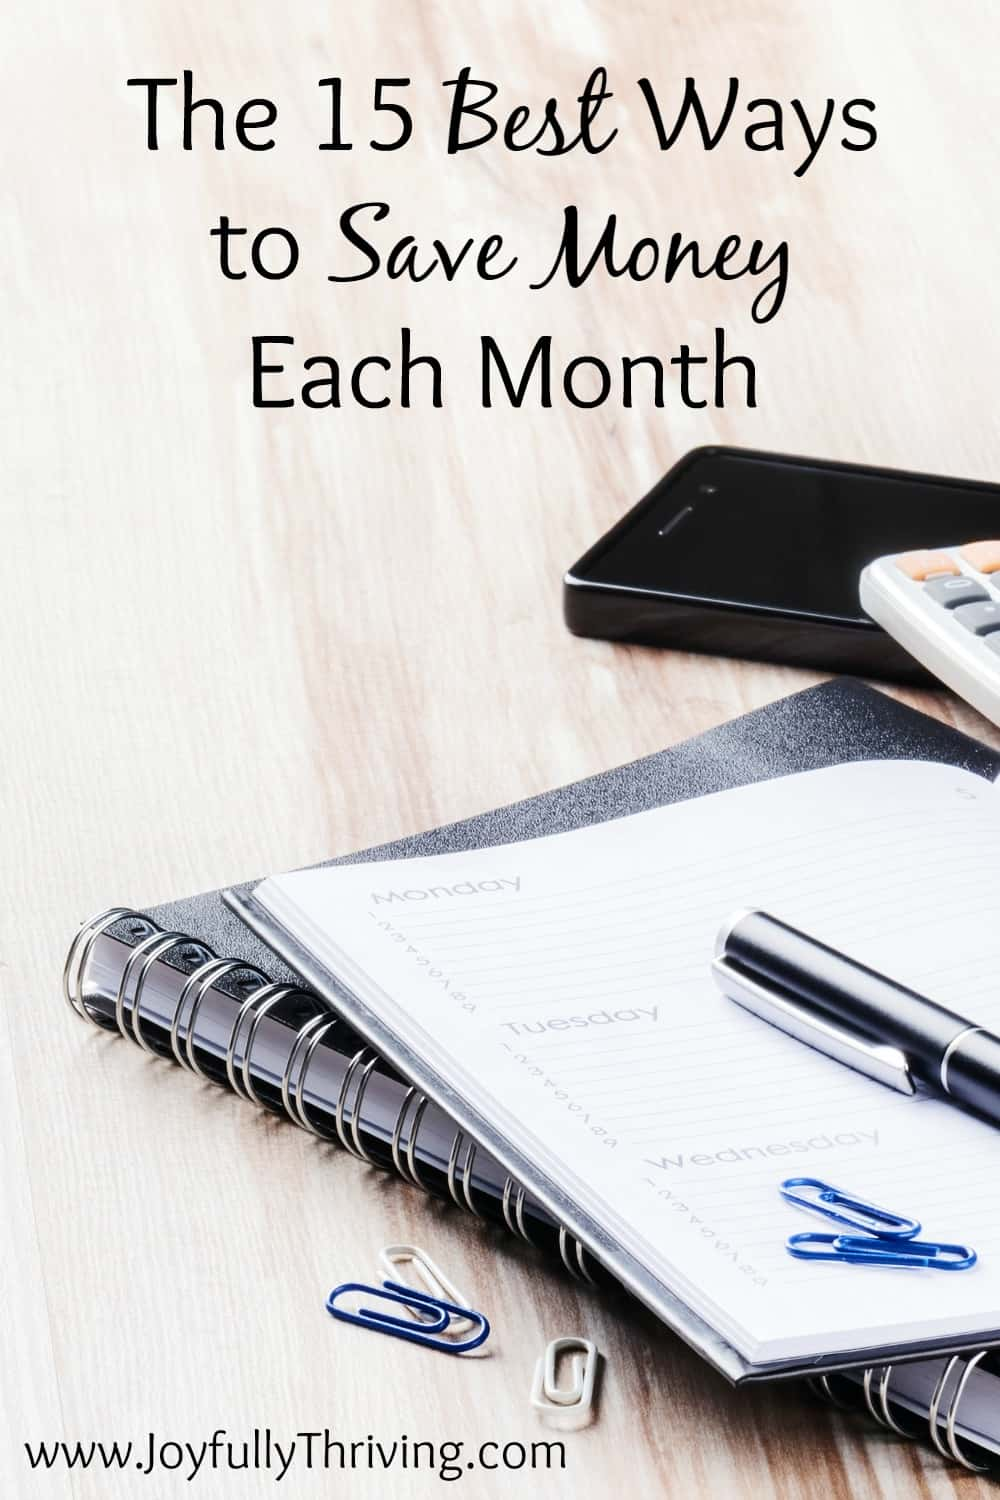 Great list of ways to save month each month. Now to just start doing them all...